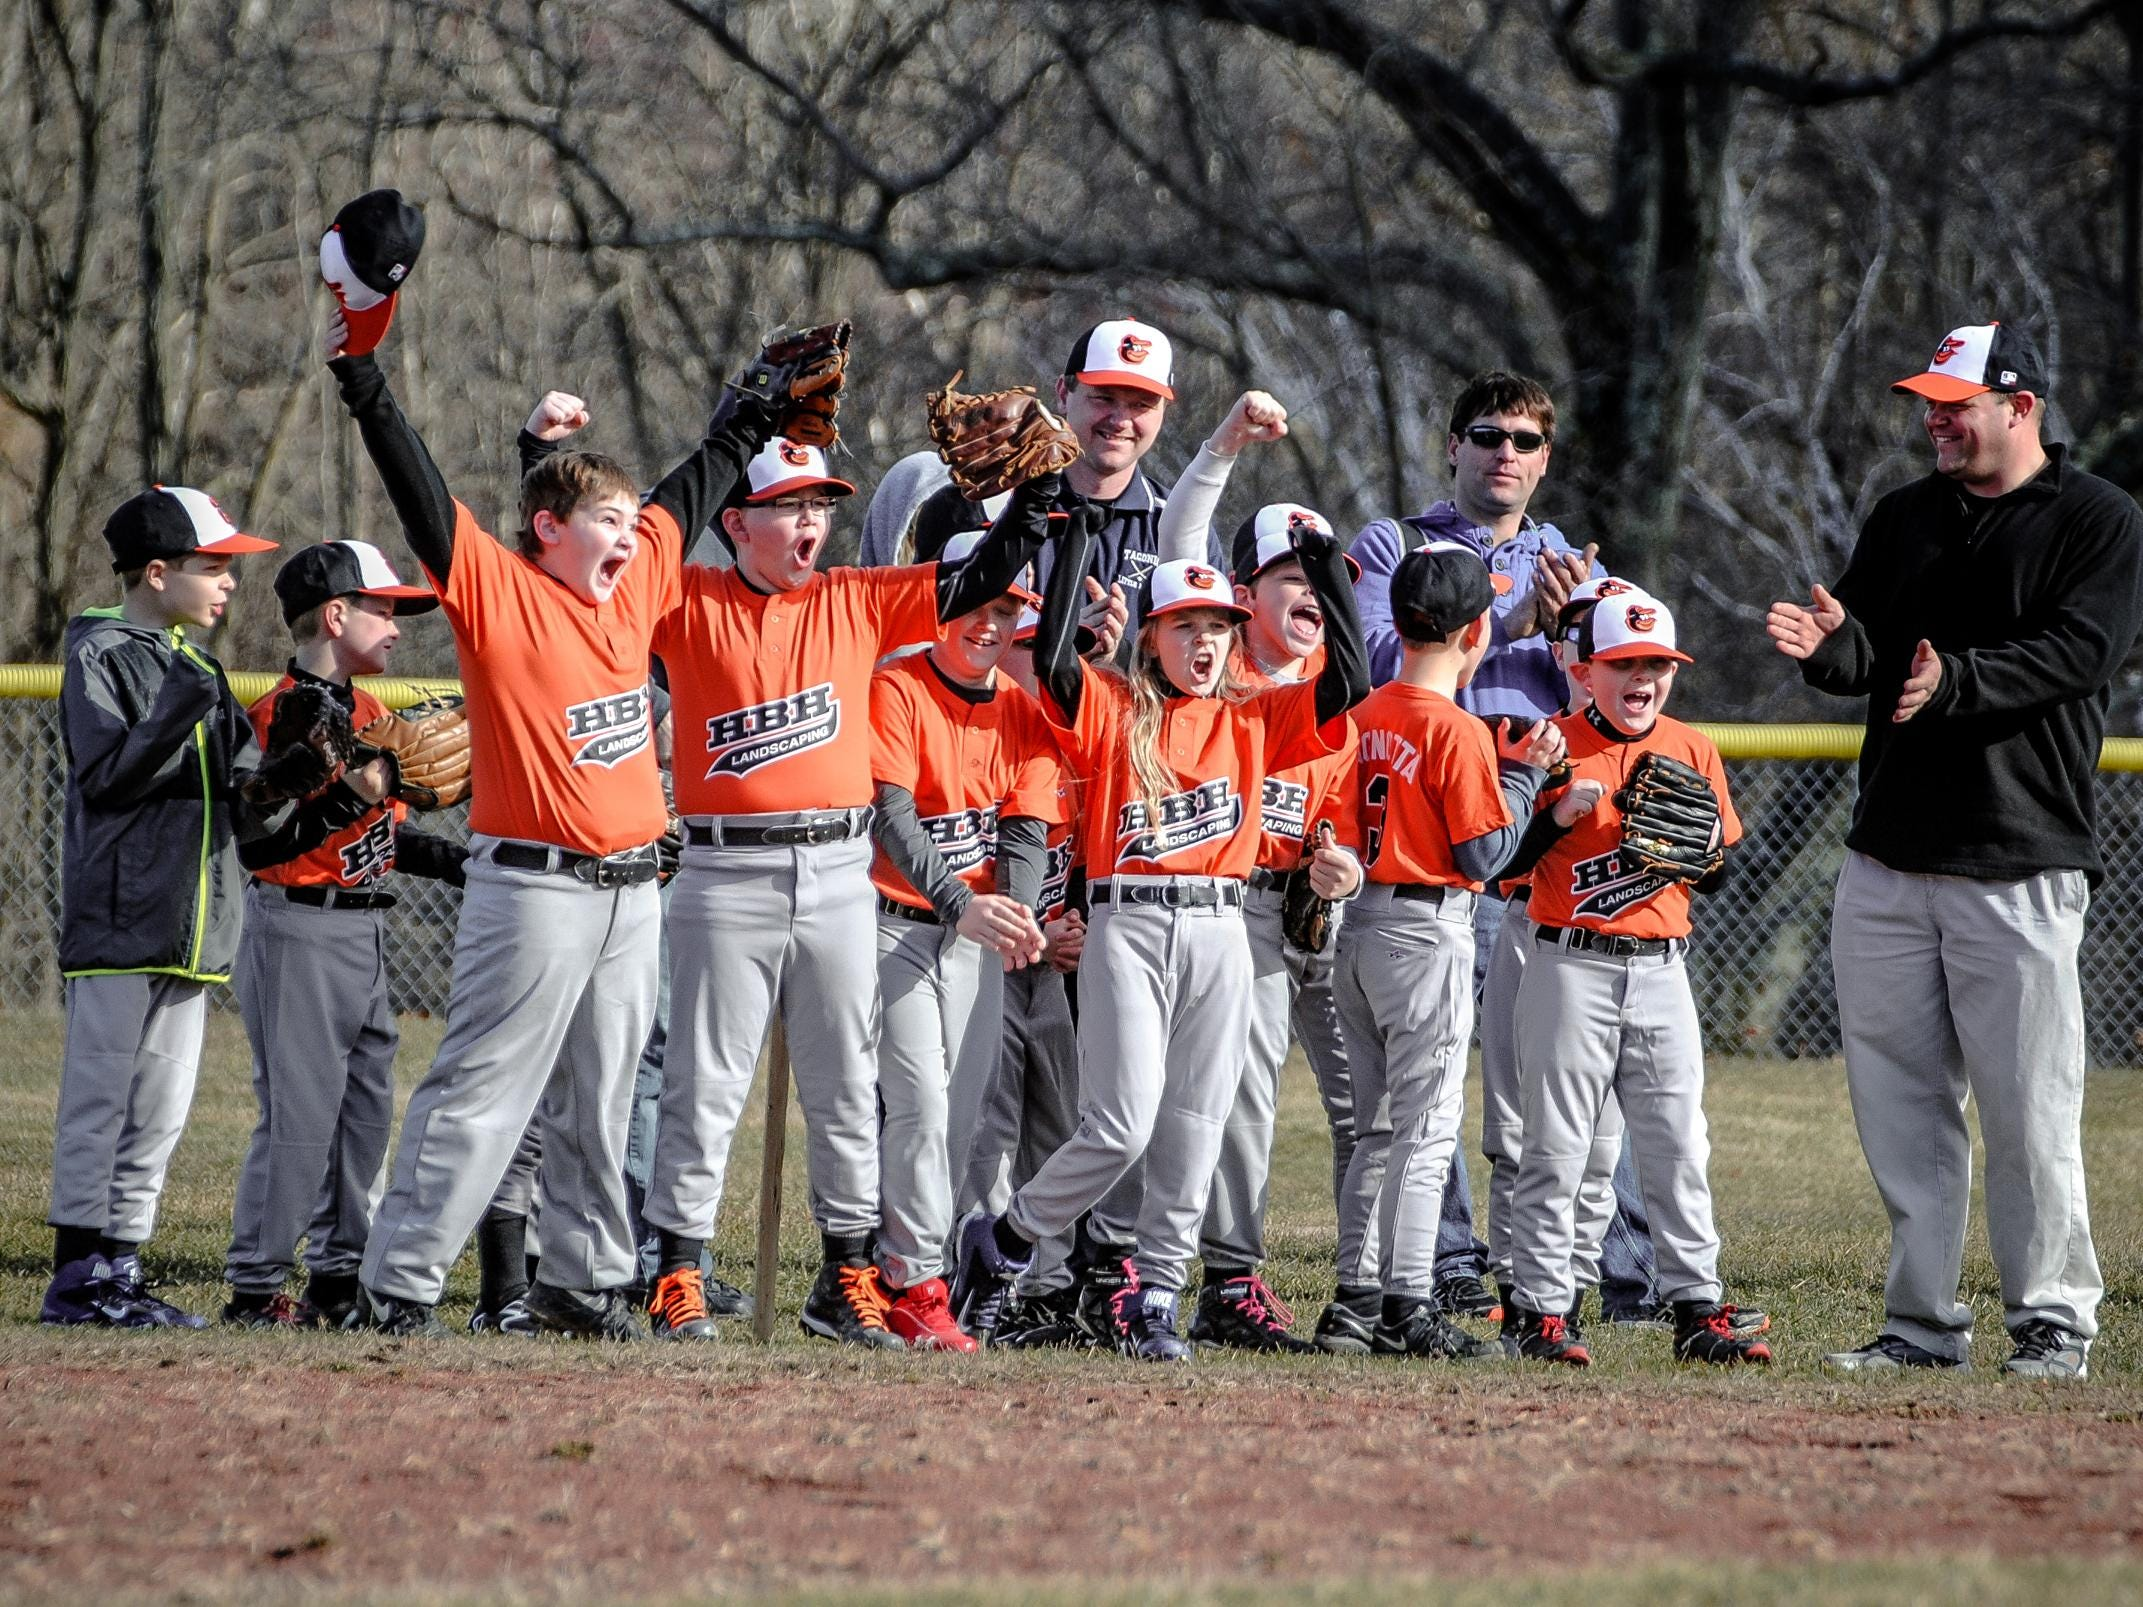 The HBH Landscaping Orioles cheer during the Taconic Little League's 2015 Opening Day in Stanfordville.